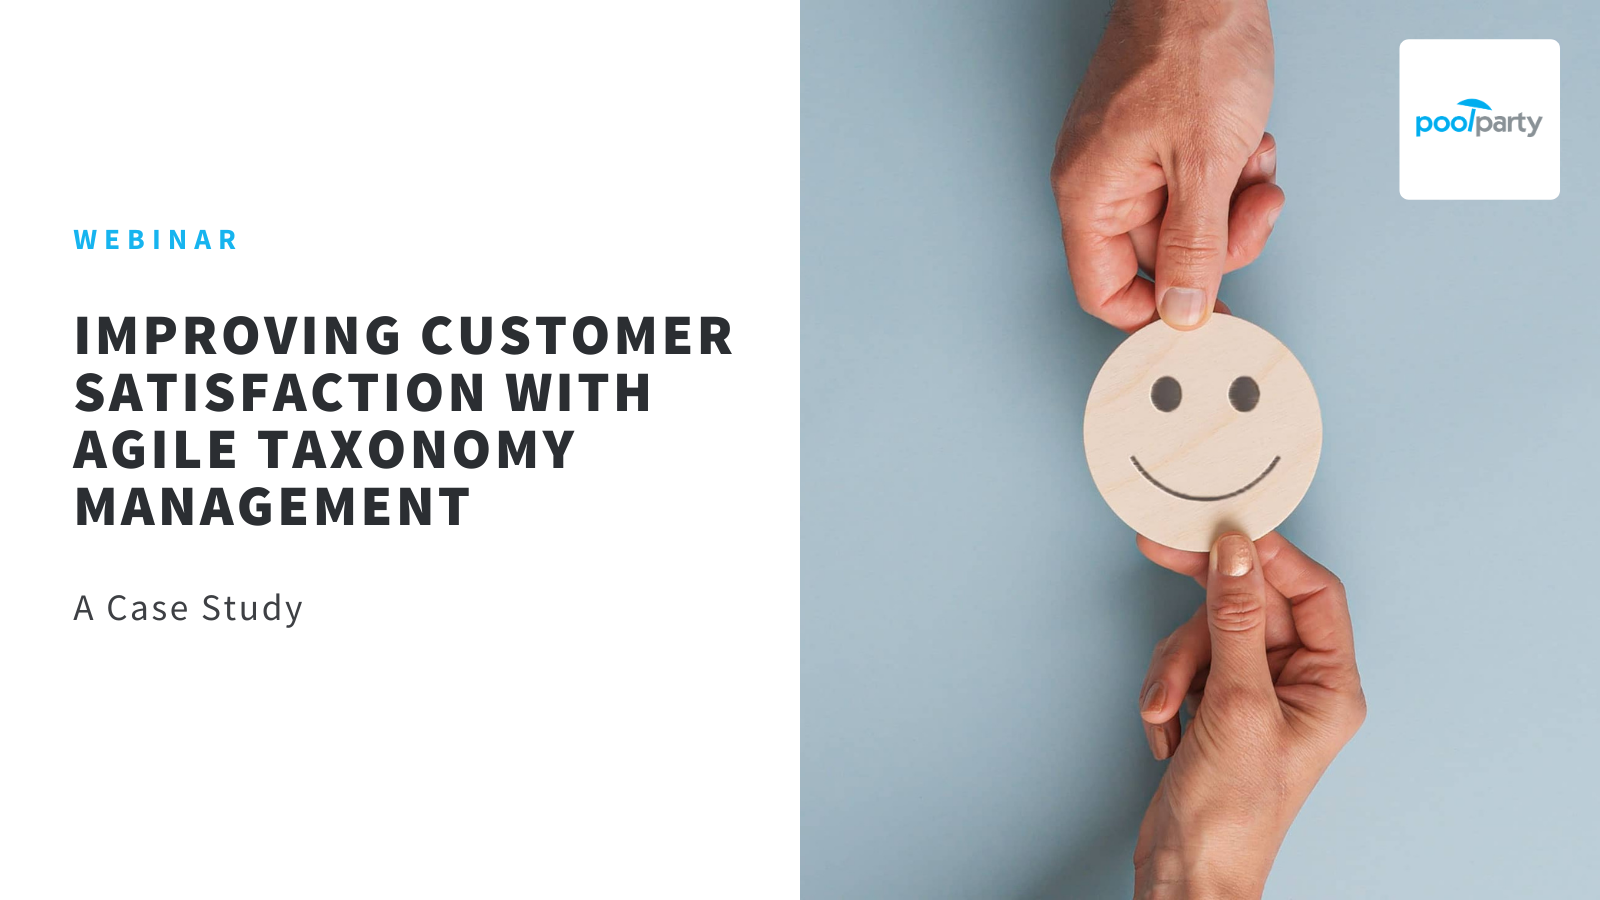 Webinar: Agile Taxonomy Management for Customer Satisfaction